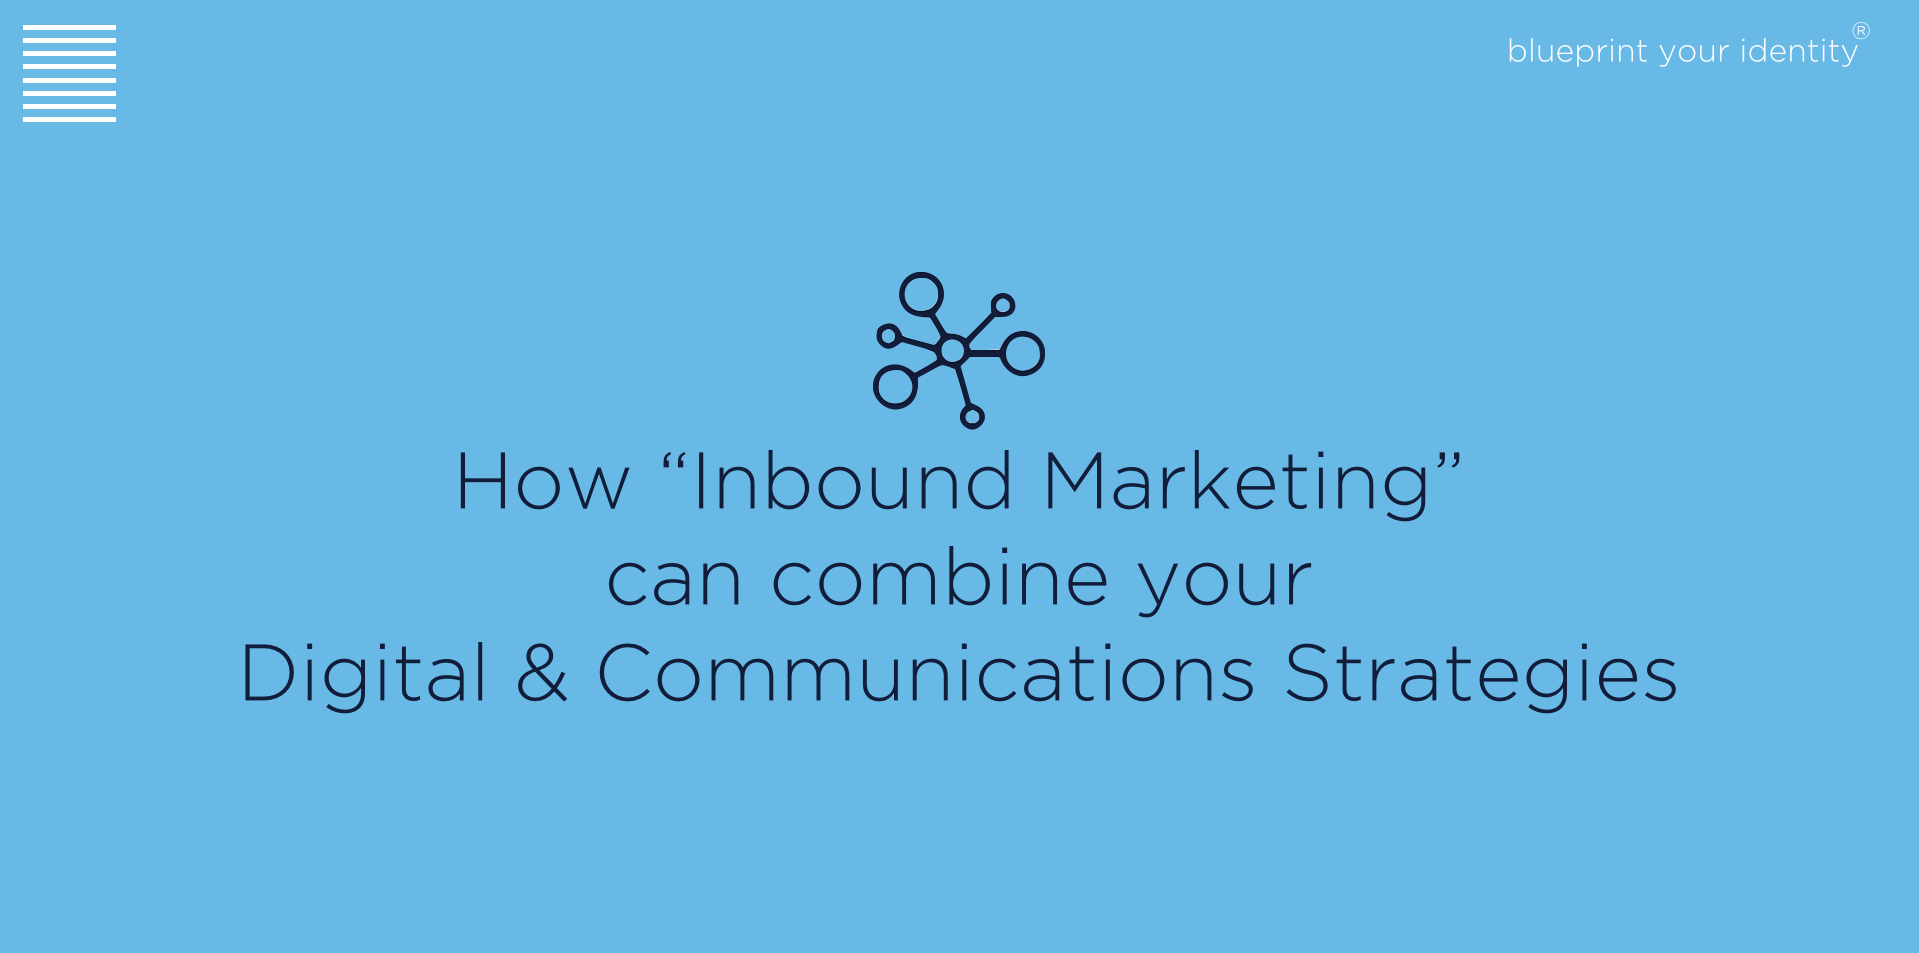 How_Inbound_Marketing_can_Combine_your_Digital__Communications.png